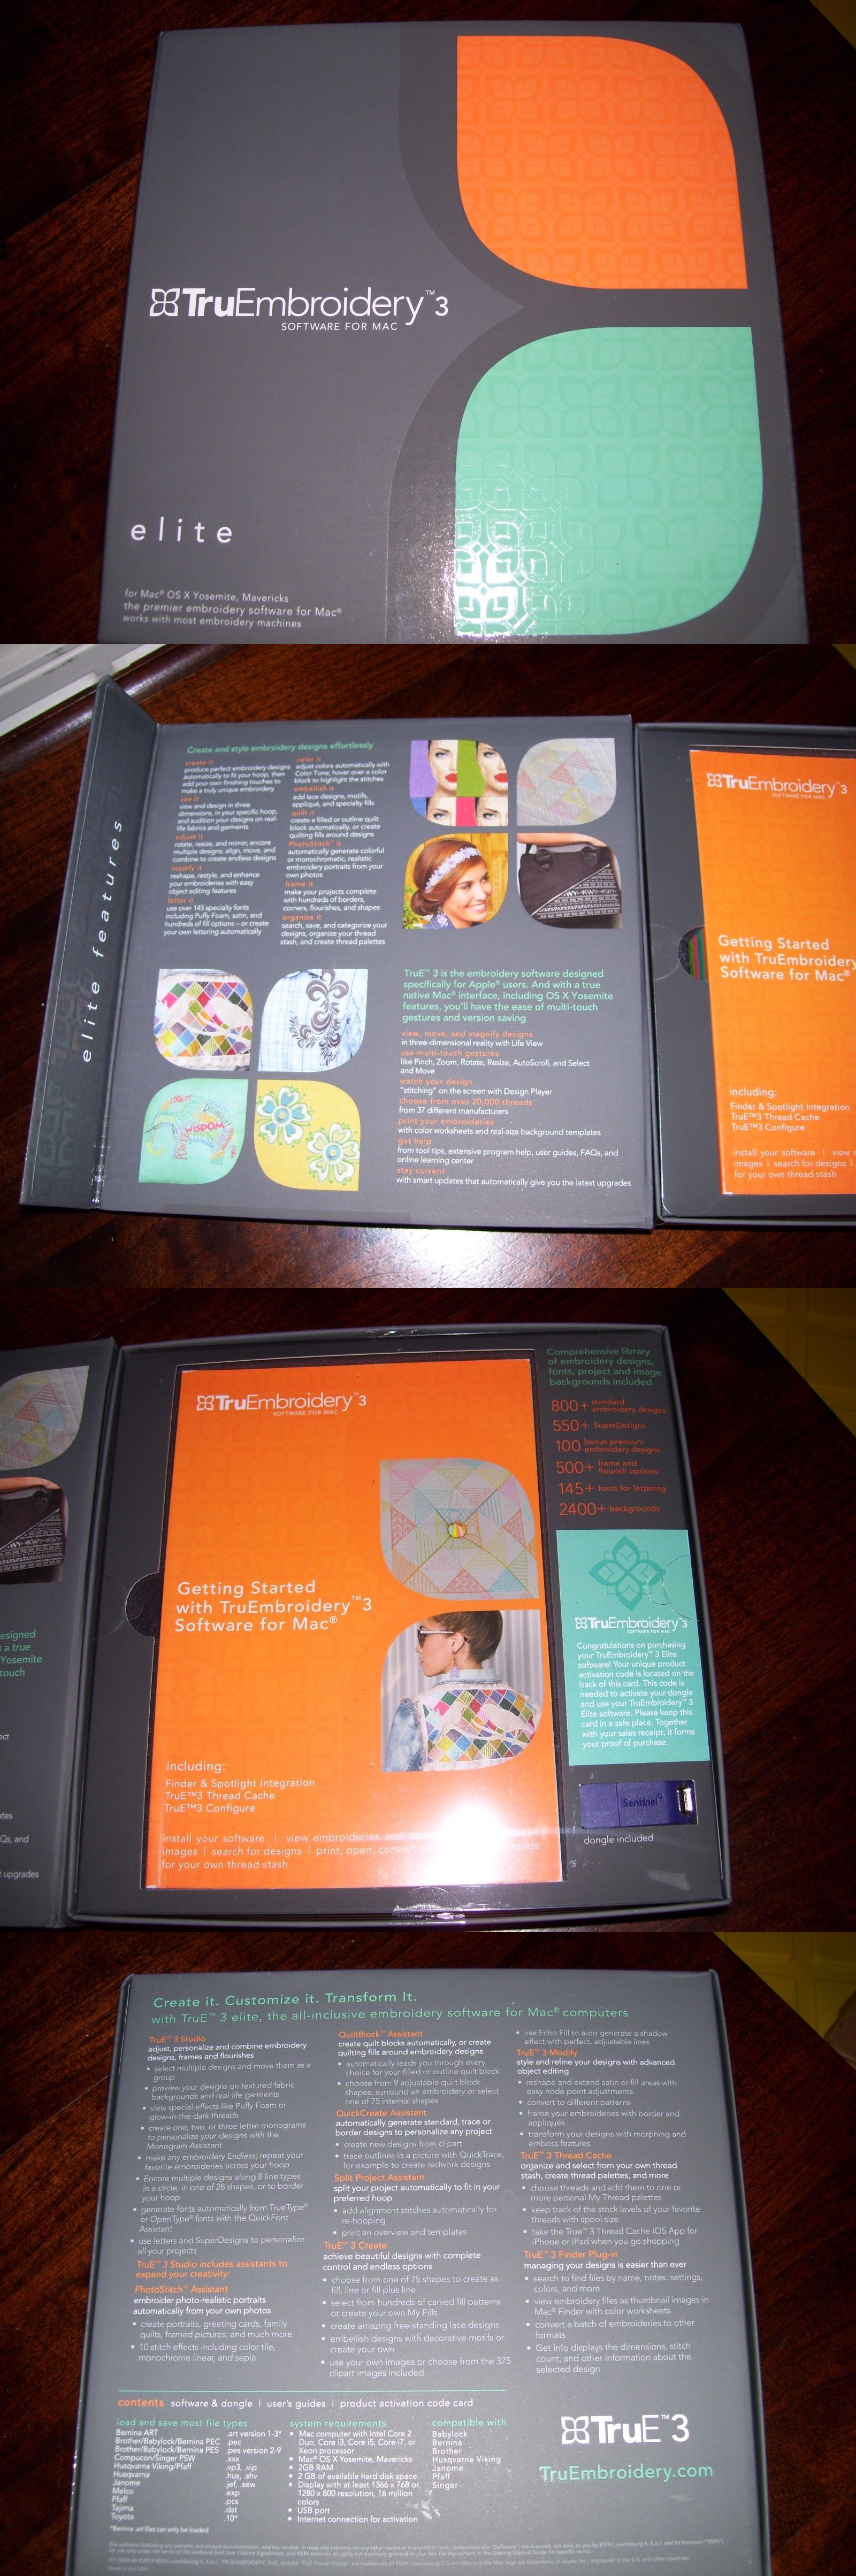 Digitizing Software 71197 Truembroidery 3 Software For Mac Elite